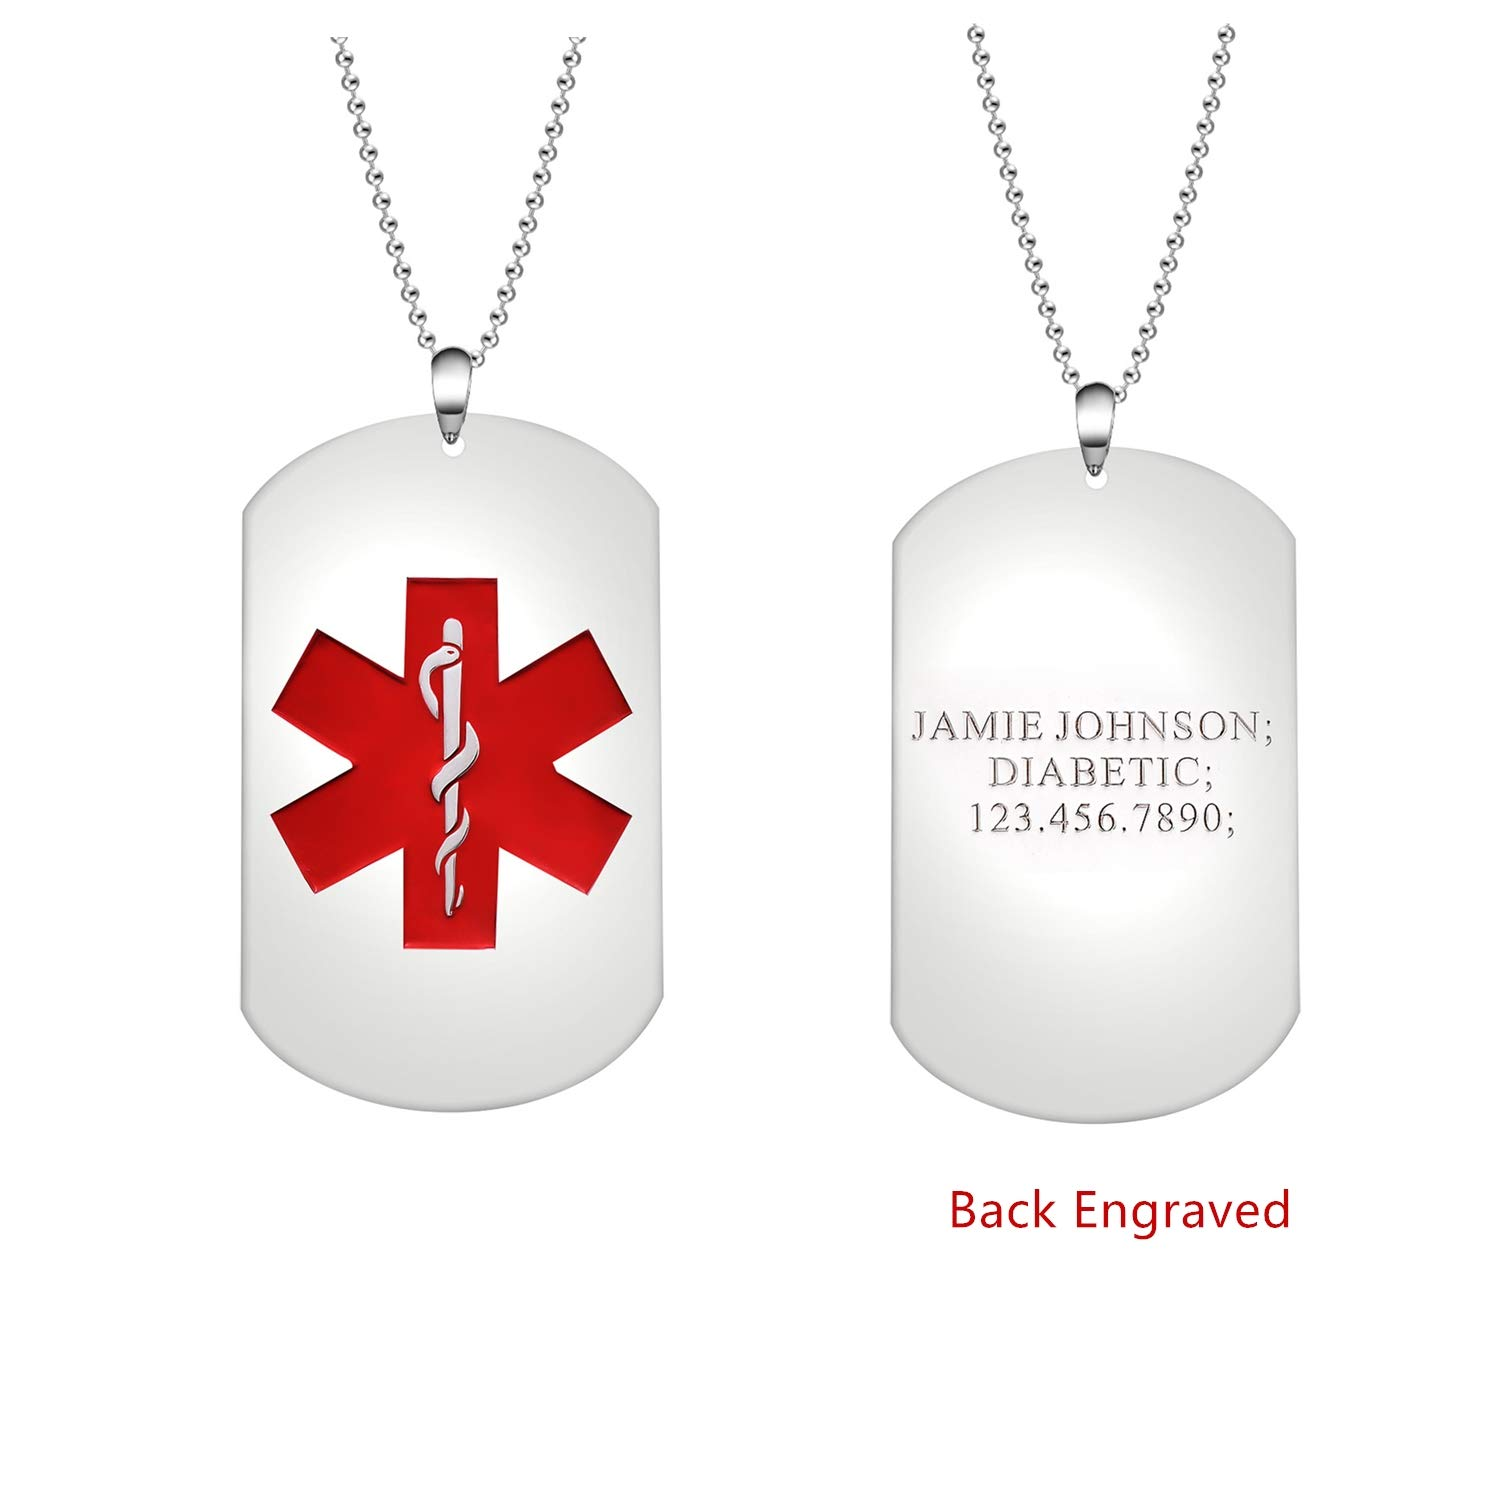 Silver MissNity Sterling Silver Personalized Medical Alert ID Necklace for Men Women Dog Tag Emergency Pendant Free Engraved